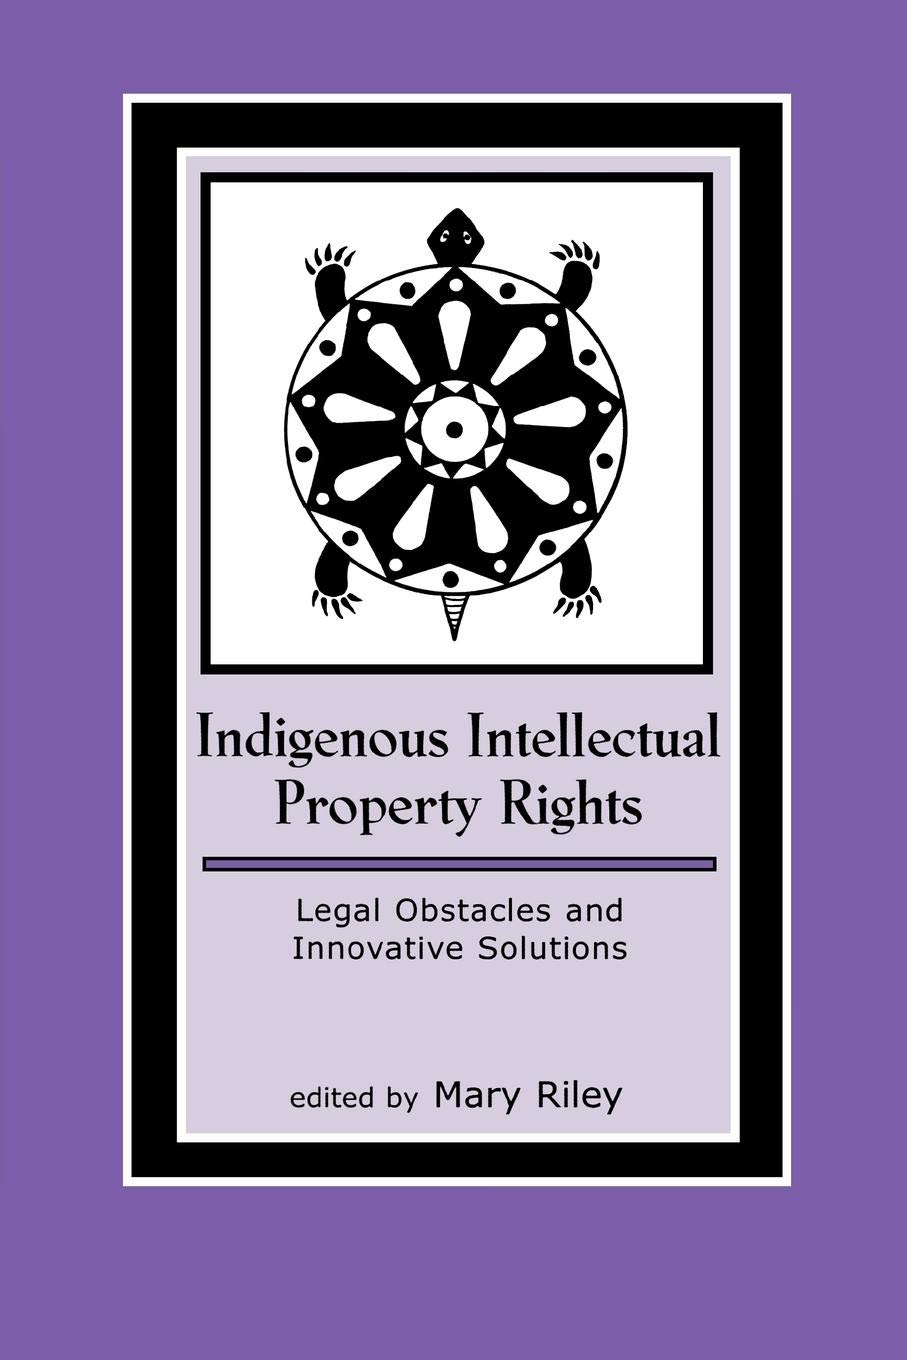 Indigenous Intellectual Property Rights: Legal Obstacles and Innovative Solutions (Contemporary Native American Communities) pdf epub